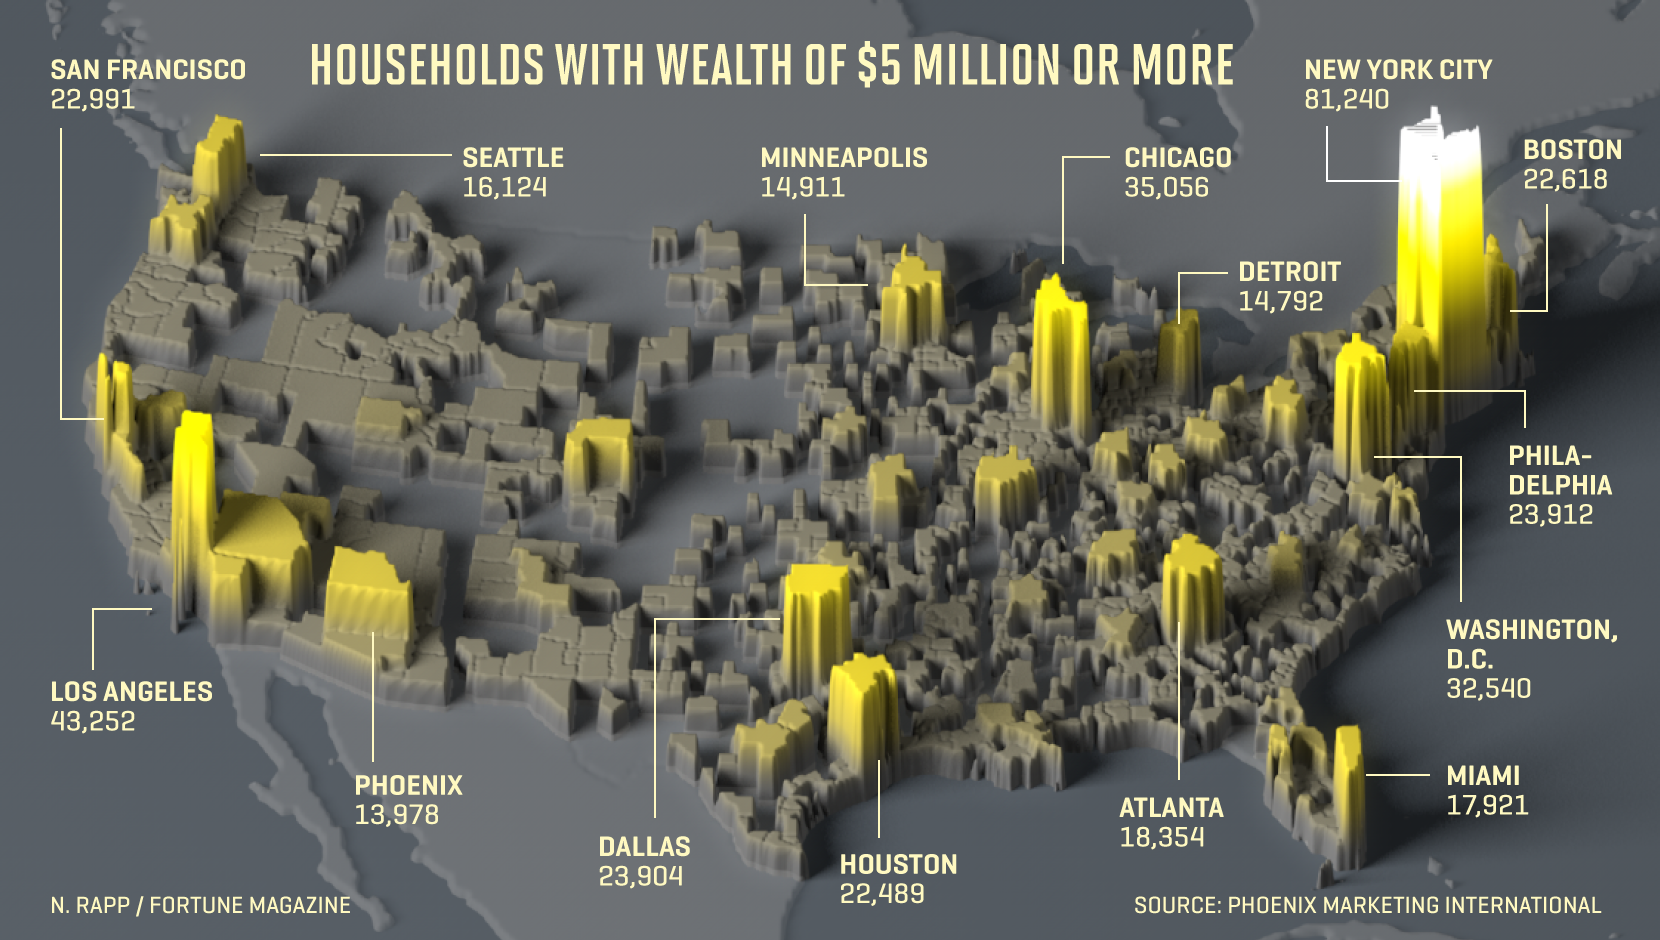 Map shows the number of $5M plus households in the U.S.